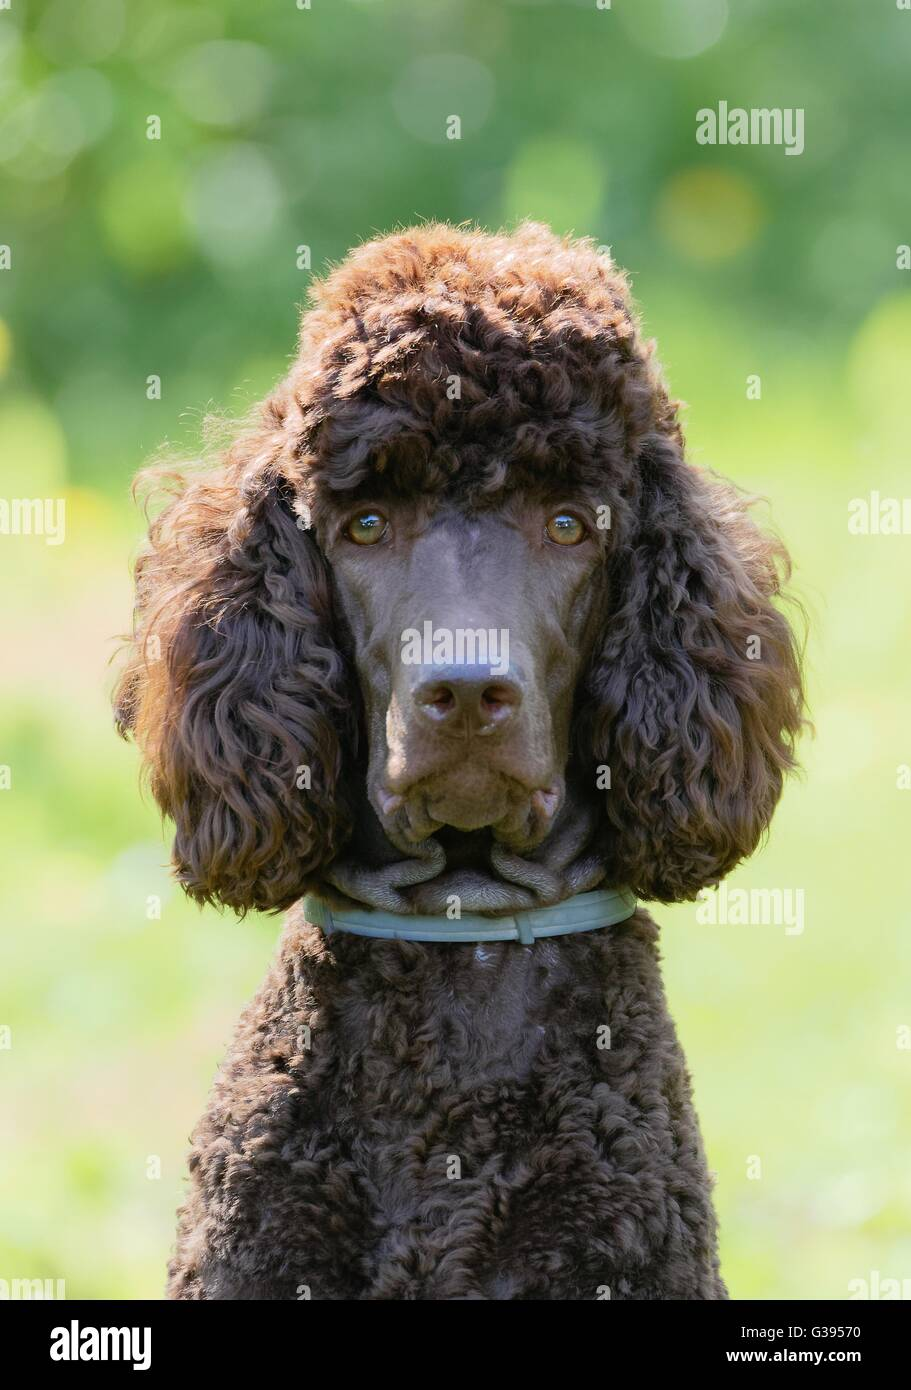 Poodle portrait in the summer with bright green background. Brown standard poodle sitting on the grass with smart look in its eyes.. Stock Photo